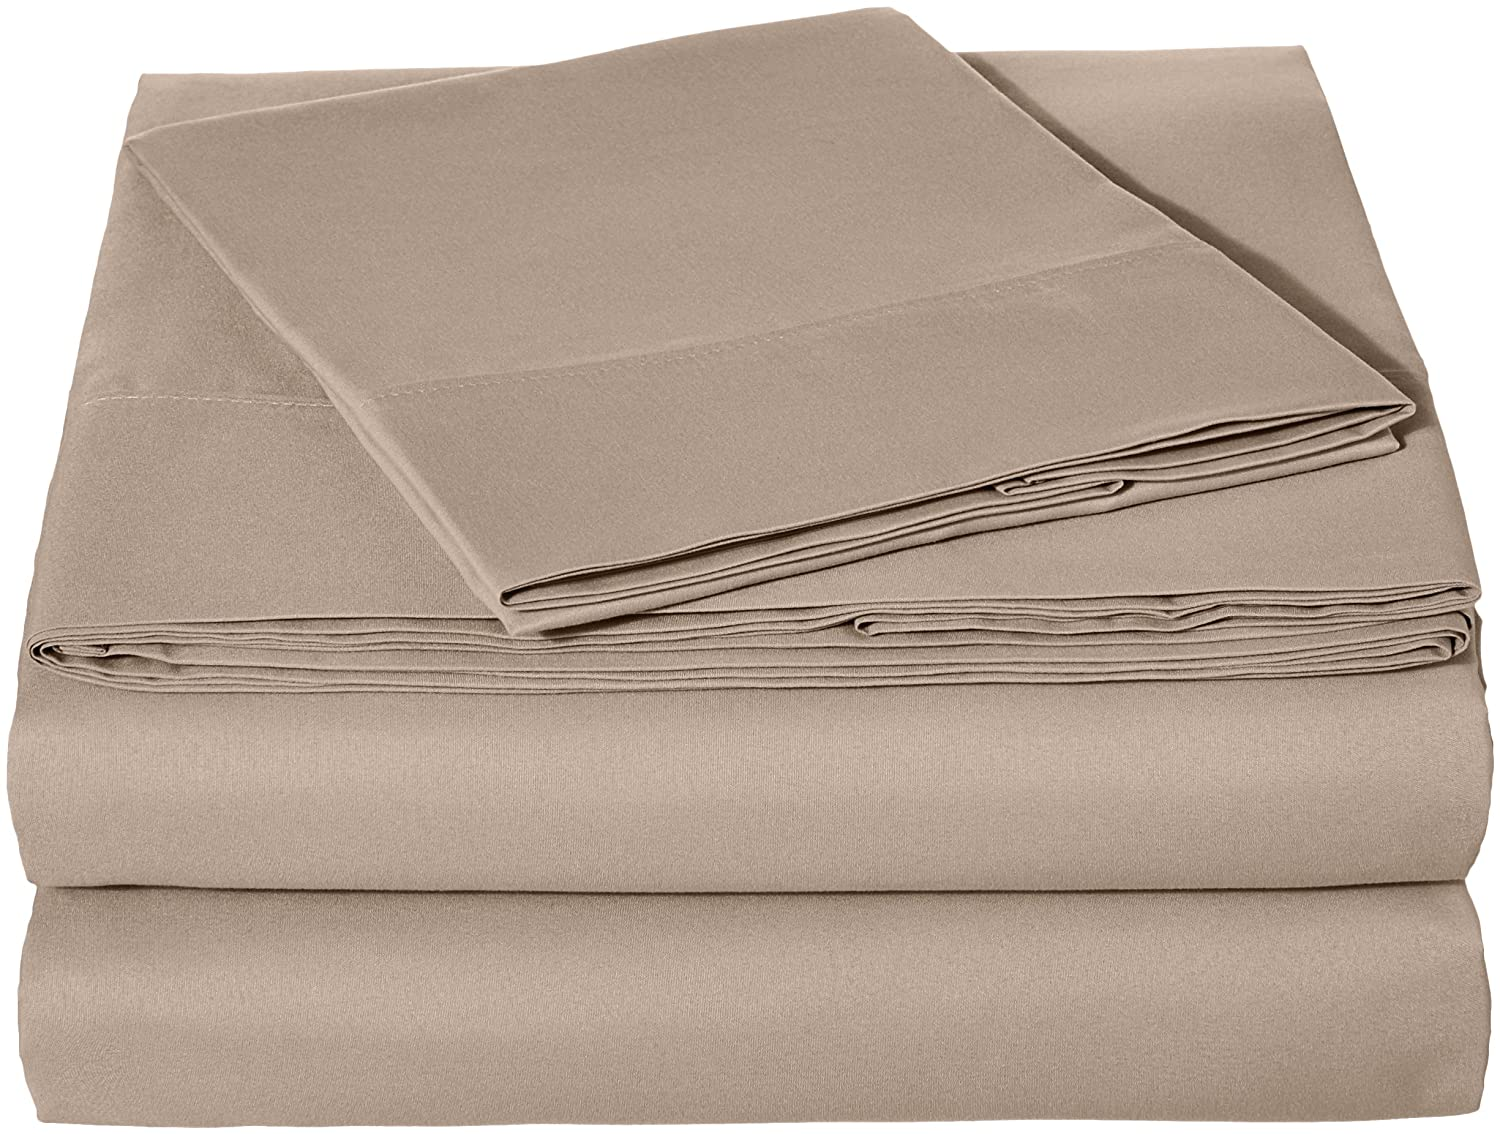 """AmazonBasics Lightweight Super Soft Easy Care Microfiber Sheet Set with 16"""" Deep Pockets - Twin XL, Taupe"""